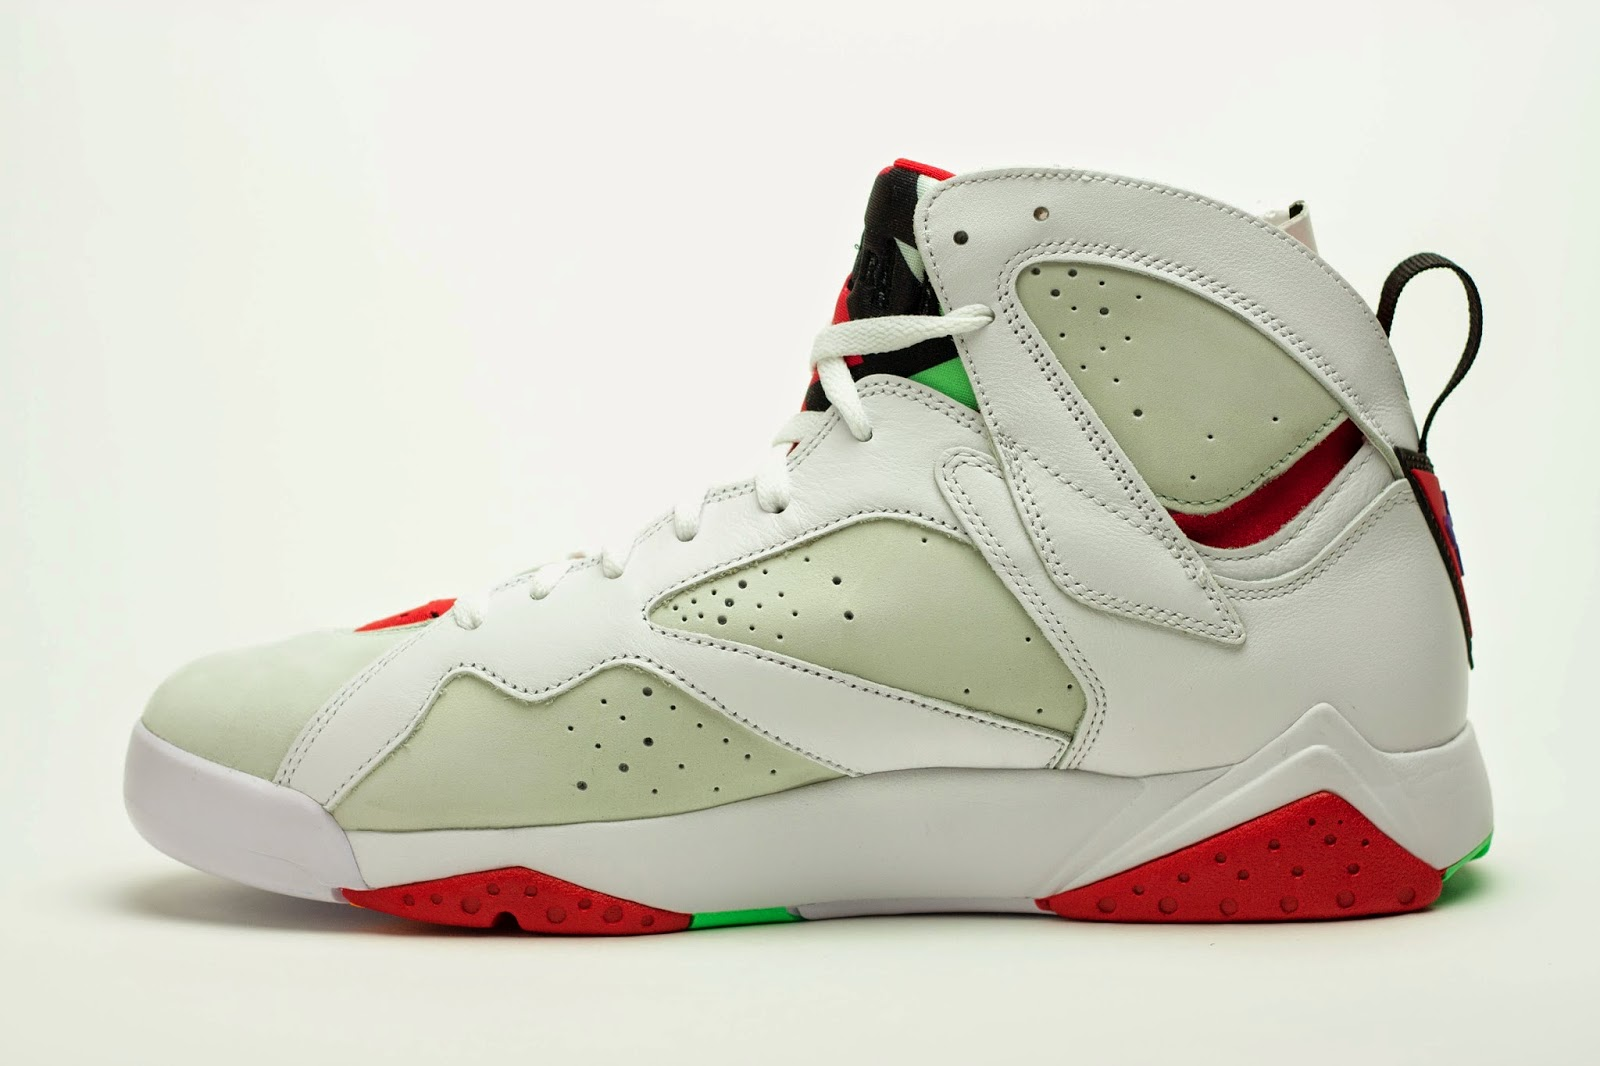 reputable site 51526 a7b55 The year of the 7s continues with the 2015 release Air Jordan 7 retro LS  Hare. 100% Authentic Shoes will ship double boxed.